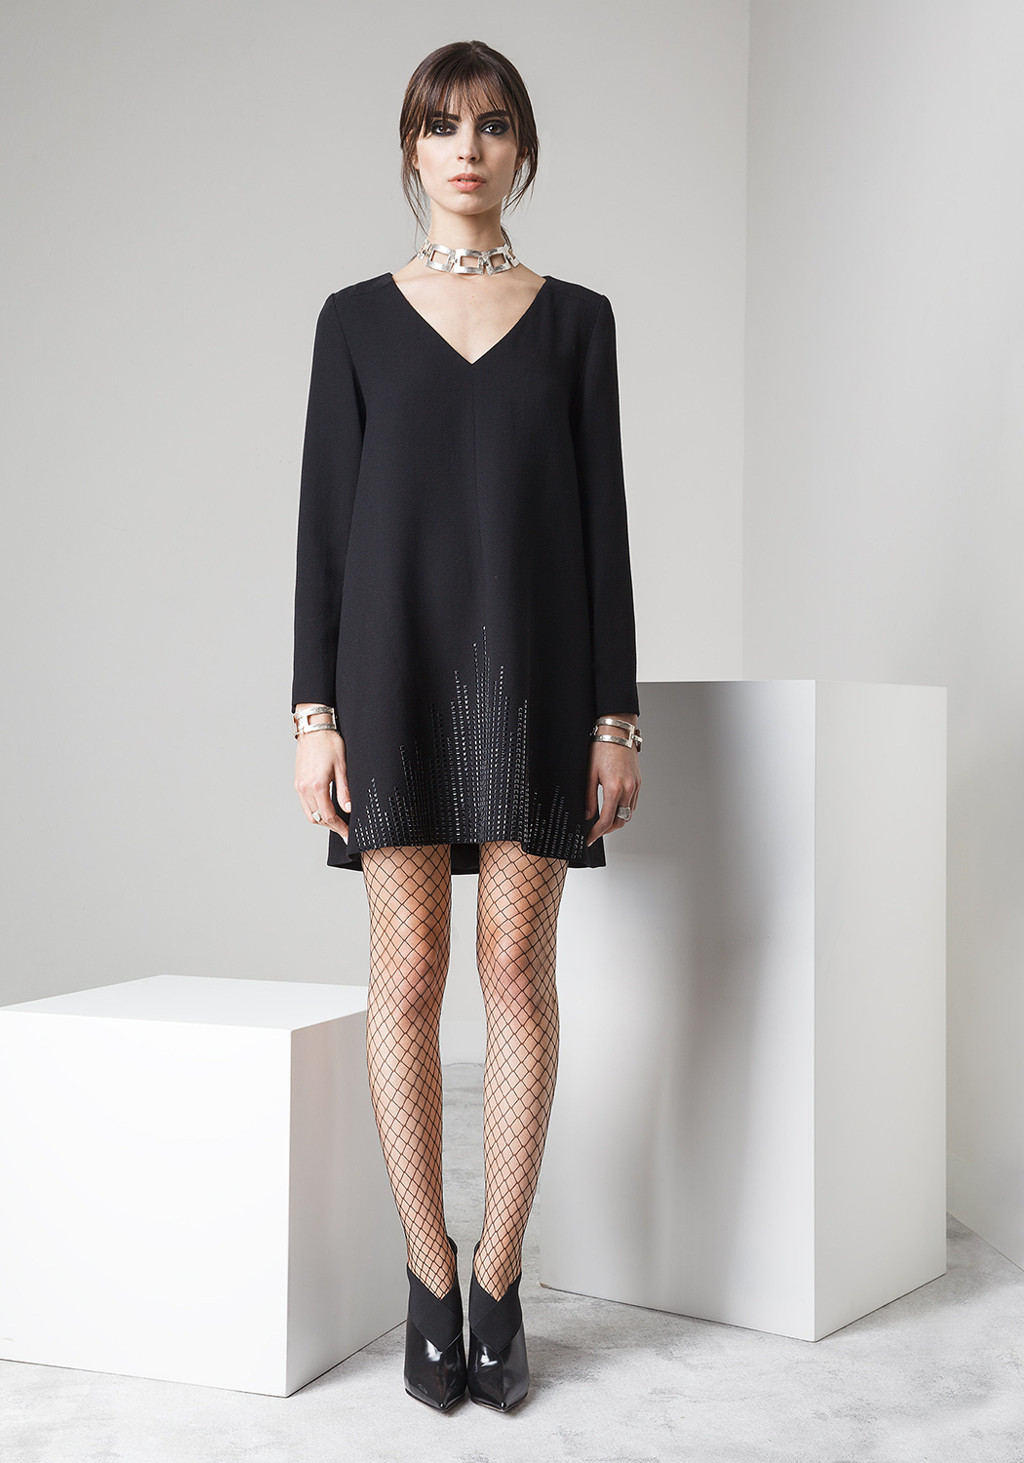 Wool crepe with bottom brillant studs dress